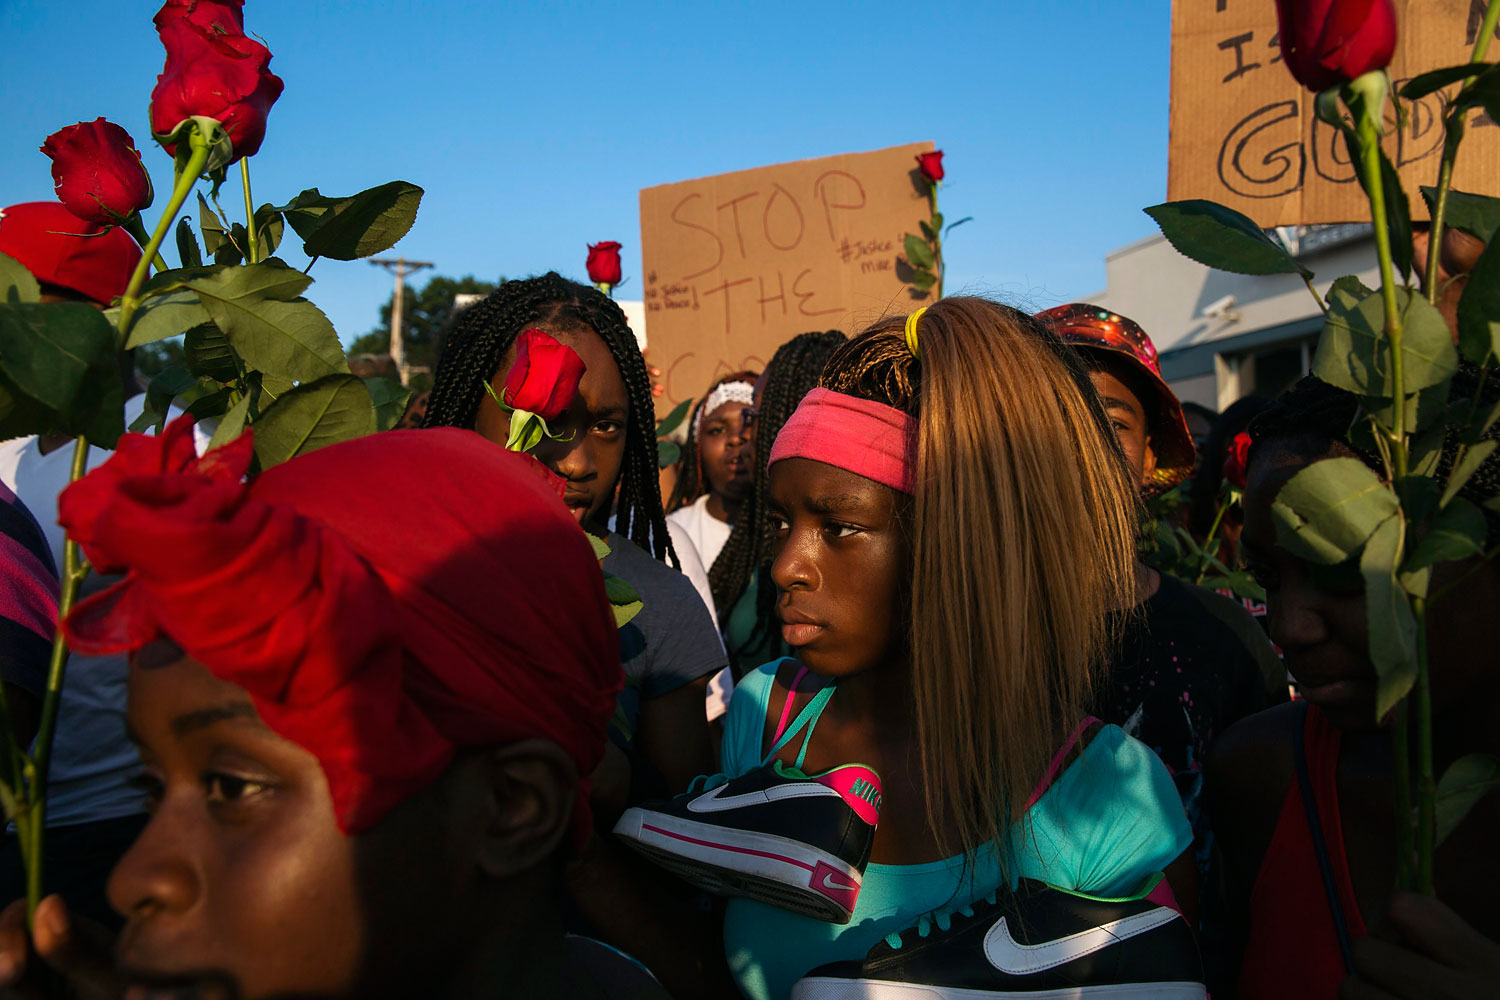 Demonstrators march down West Florissant during a peaceful march in reaction to the shooting of Michael Brown, near Ferguson, Missouri Aug. 18, 2014.